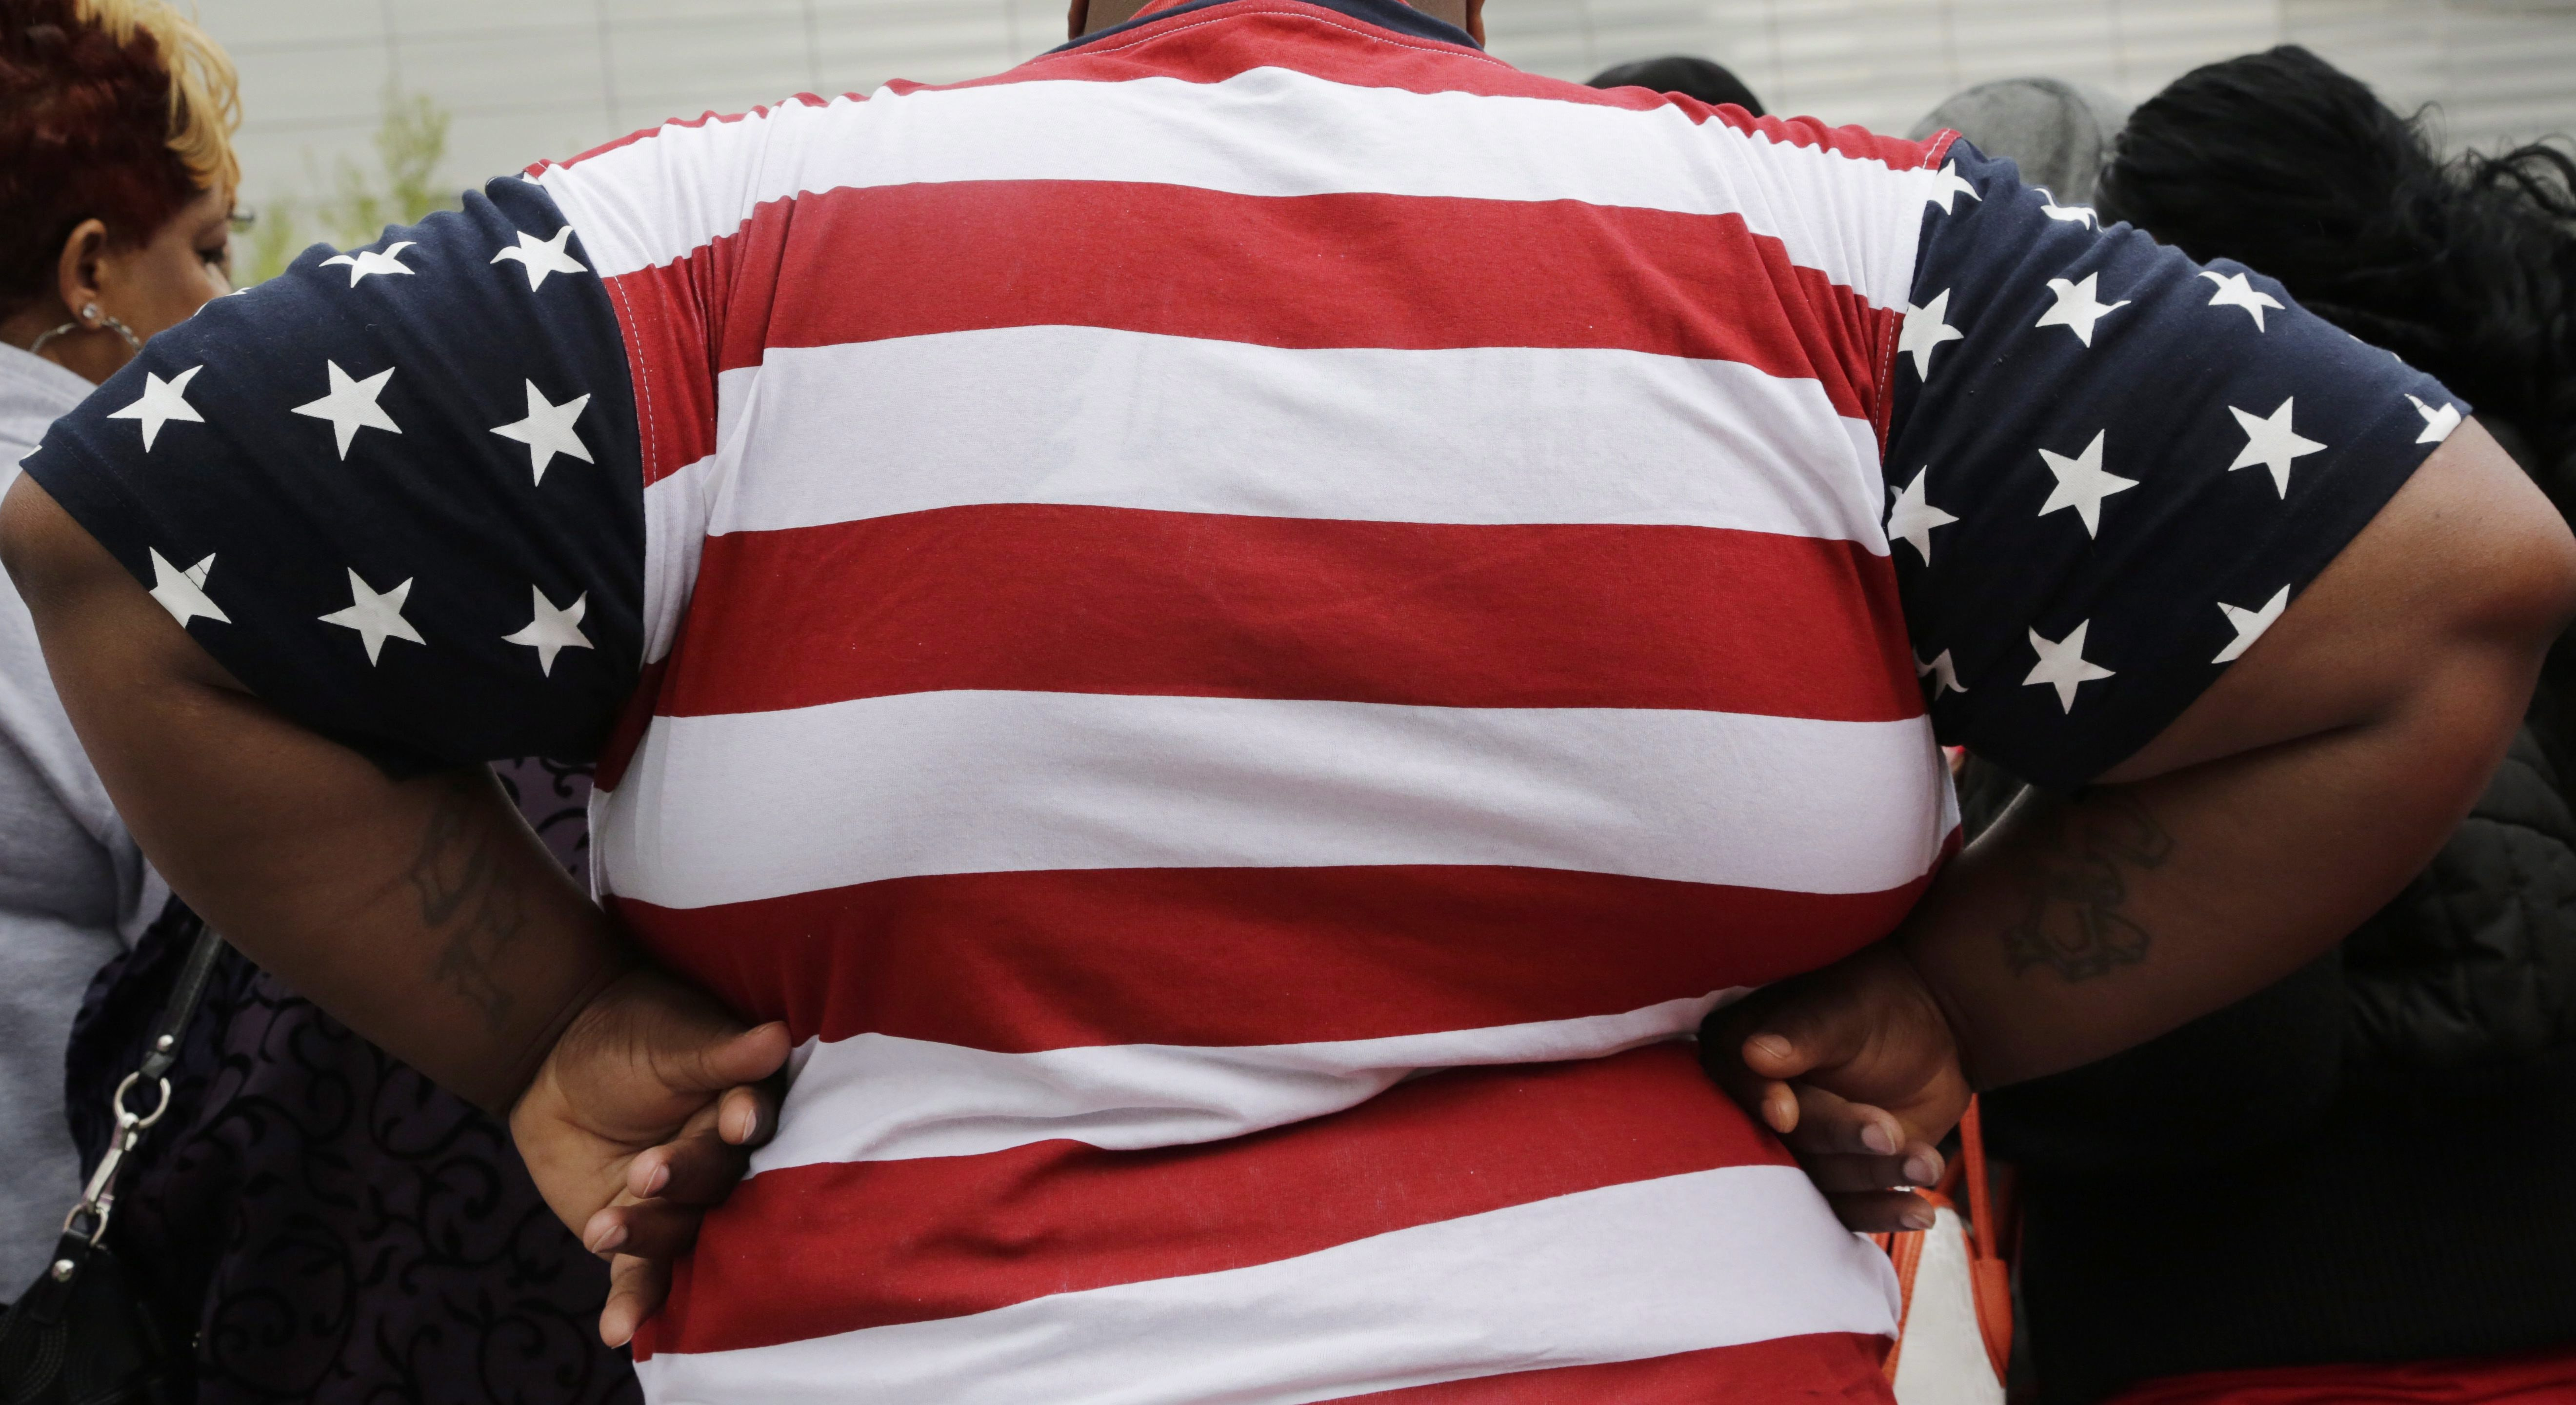 obesity in african americans essay African-american women at risk that's simply unacceptable, johnson said at the summit on obesity in african american women and call for papers/proposals.